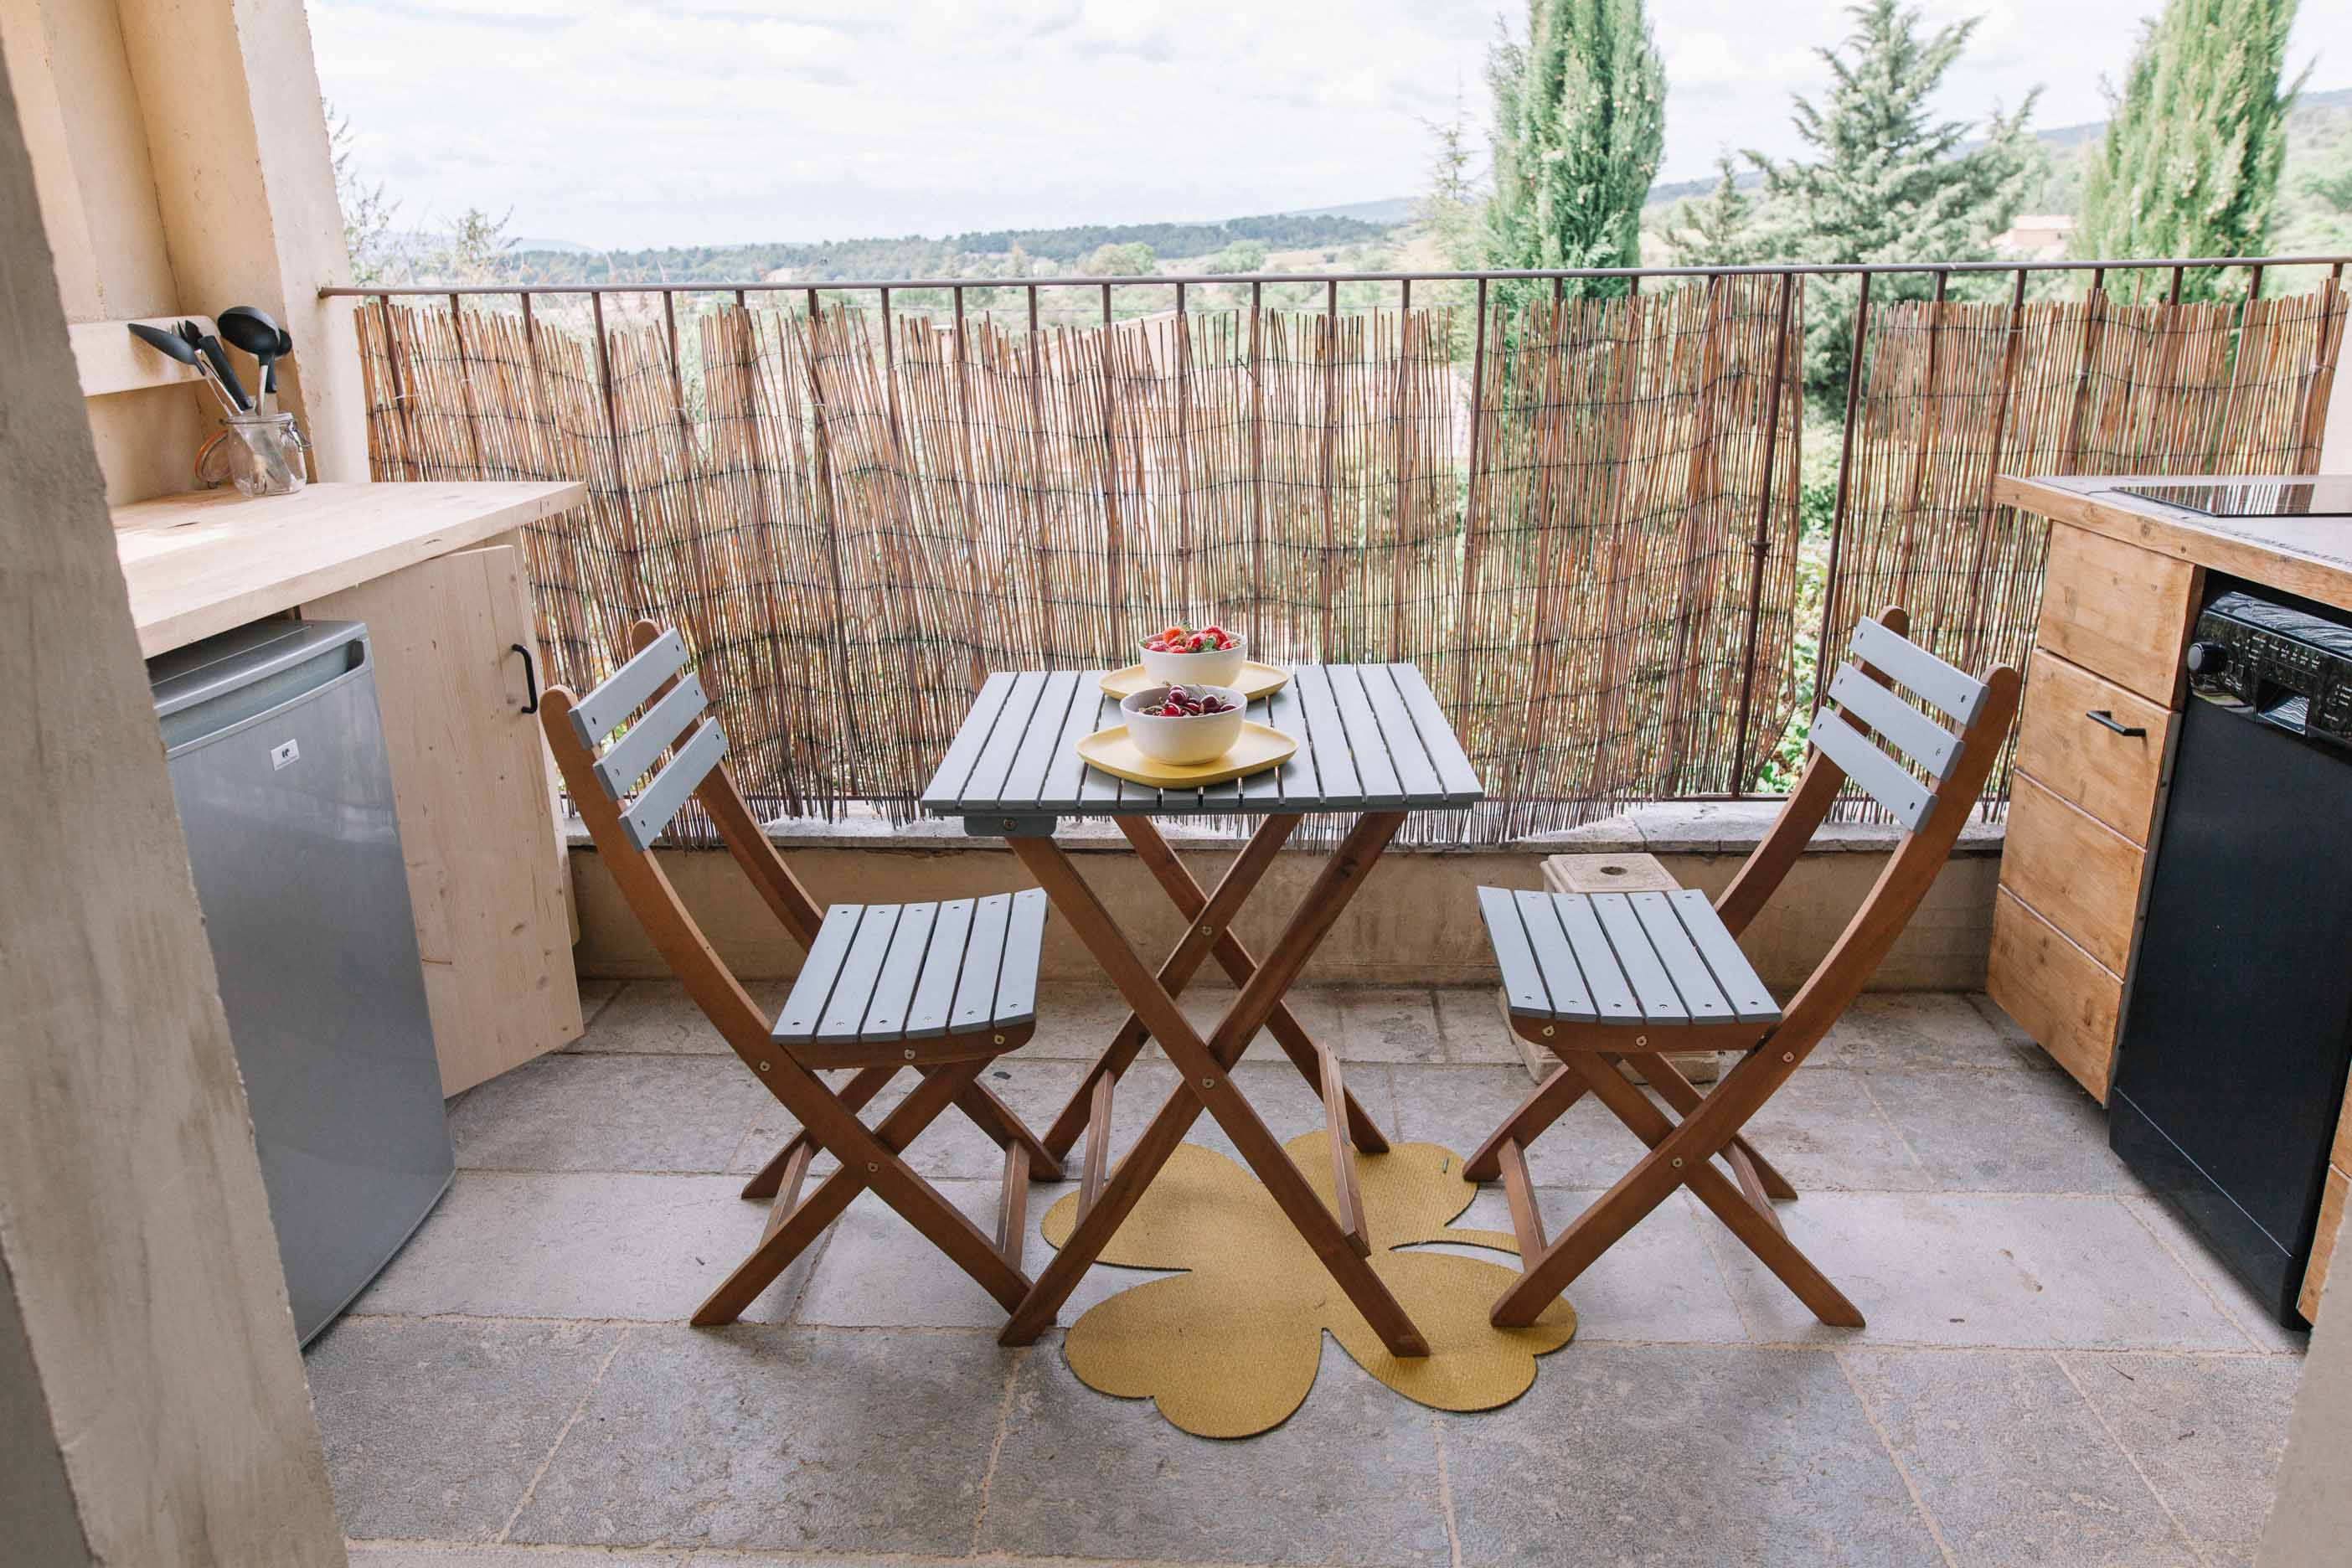 Terrasse privative de Velours au Mas de Cink, appartement de charme en Luberon